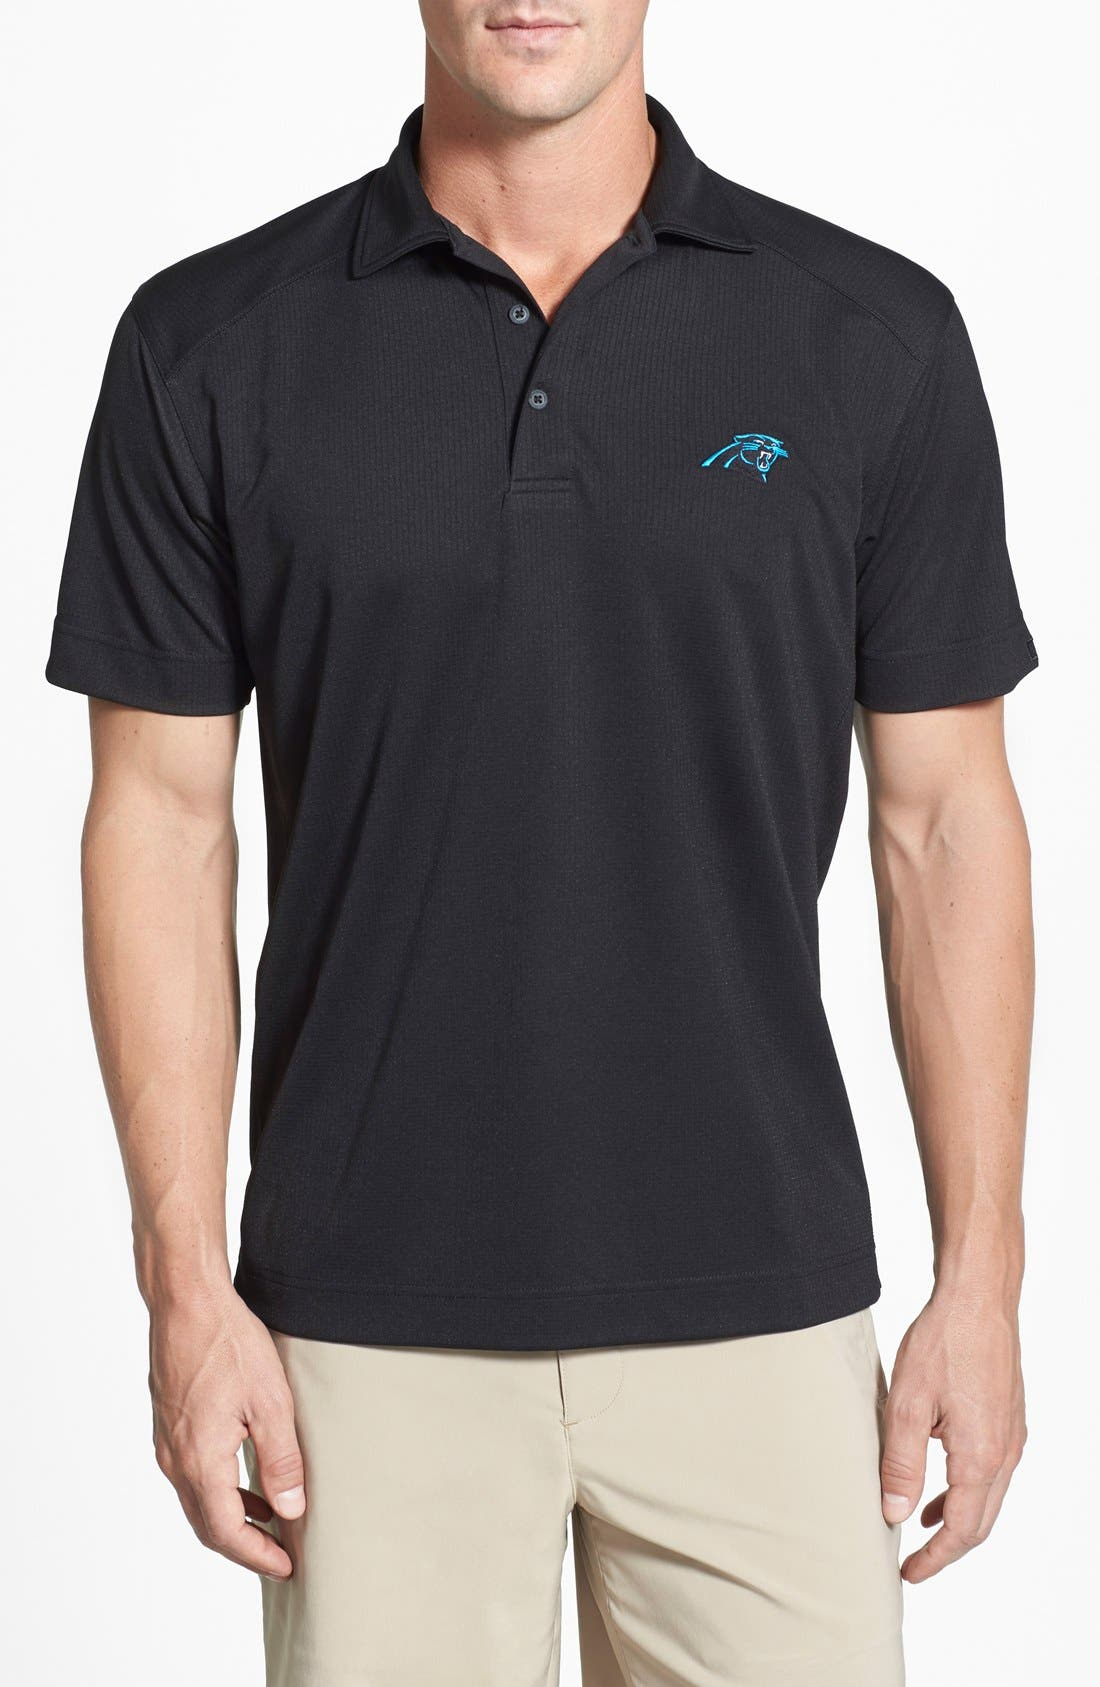 Carolina Panthers - Genre DryTec Moisture Wicking Polo,                         Main,                         color, 001